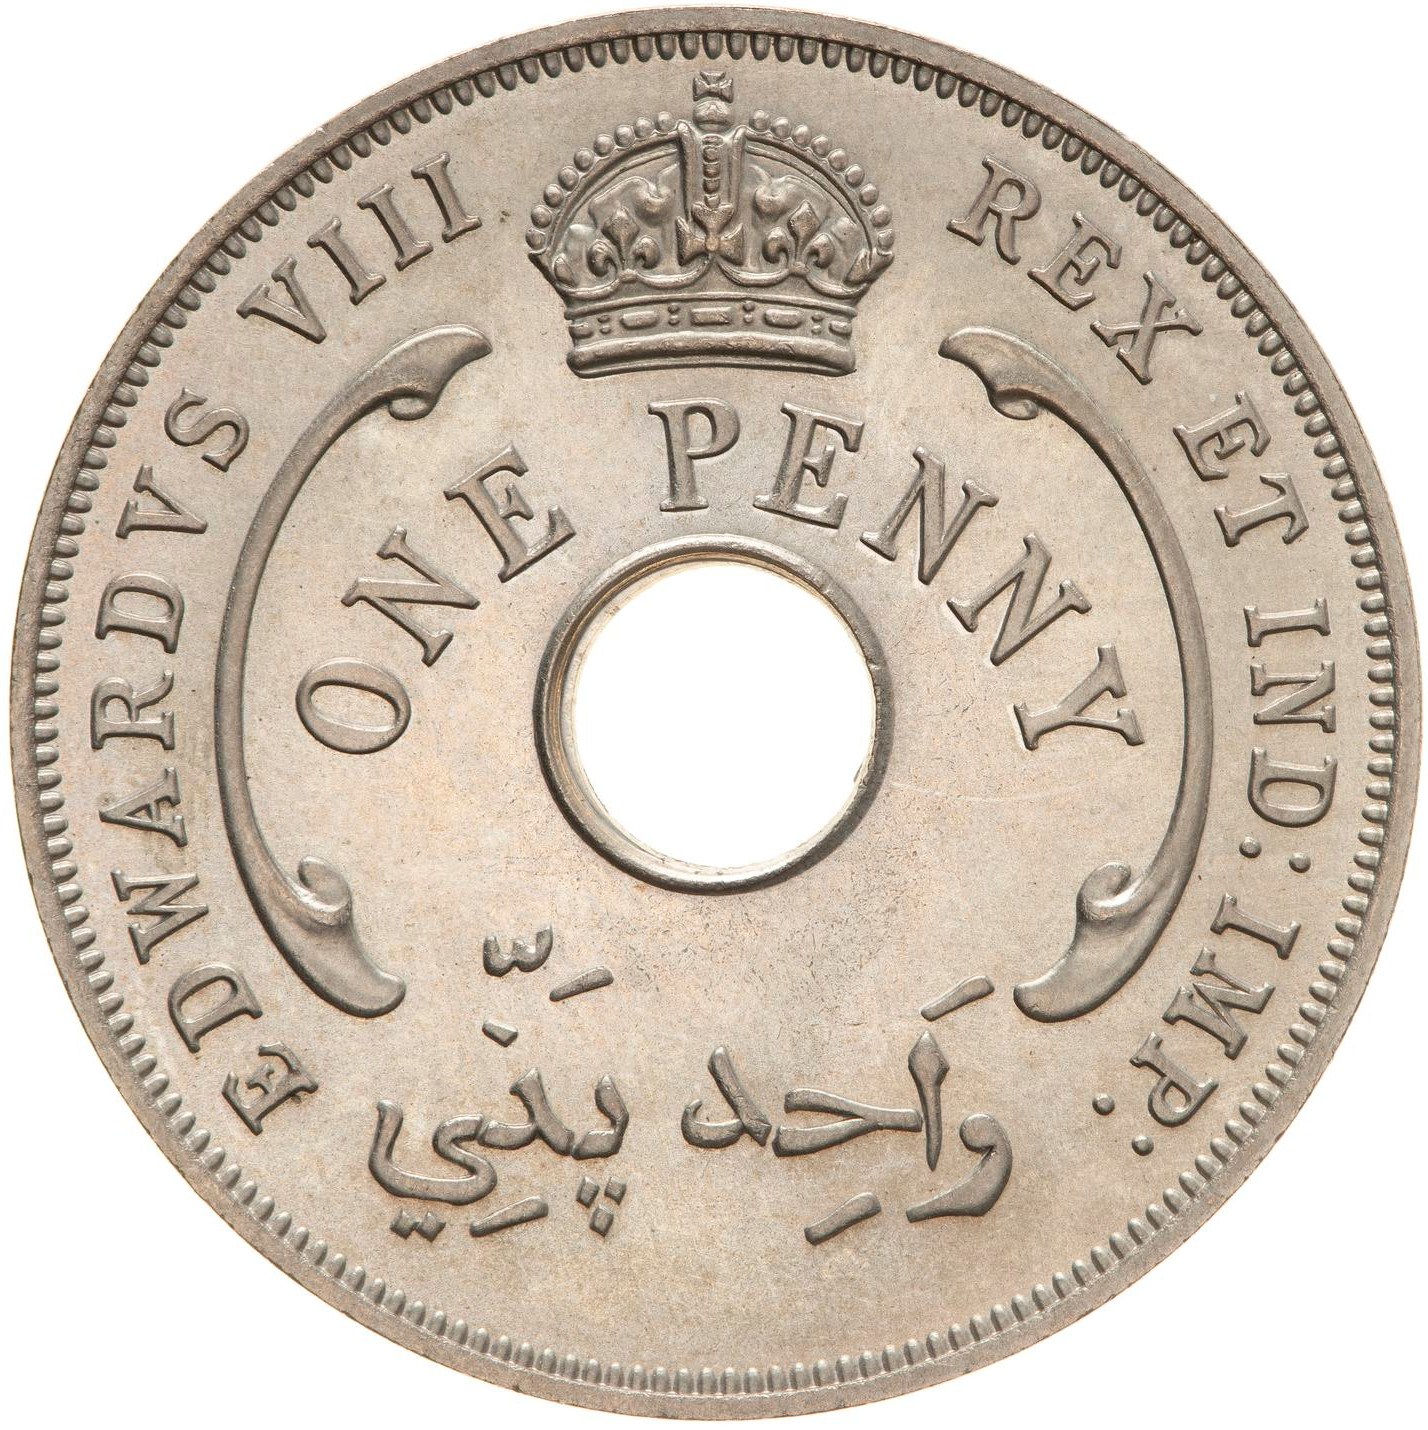 One Penny 1936 Edward VIII: Photo Proof Coin - 1 Penny, British West Africa, 1936